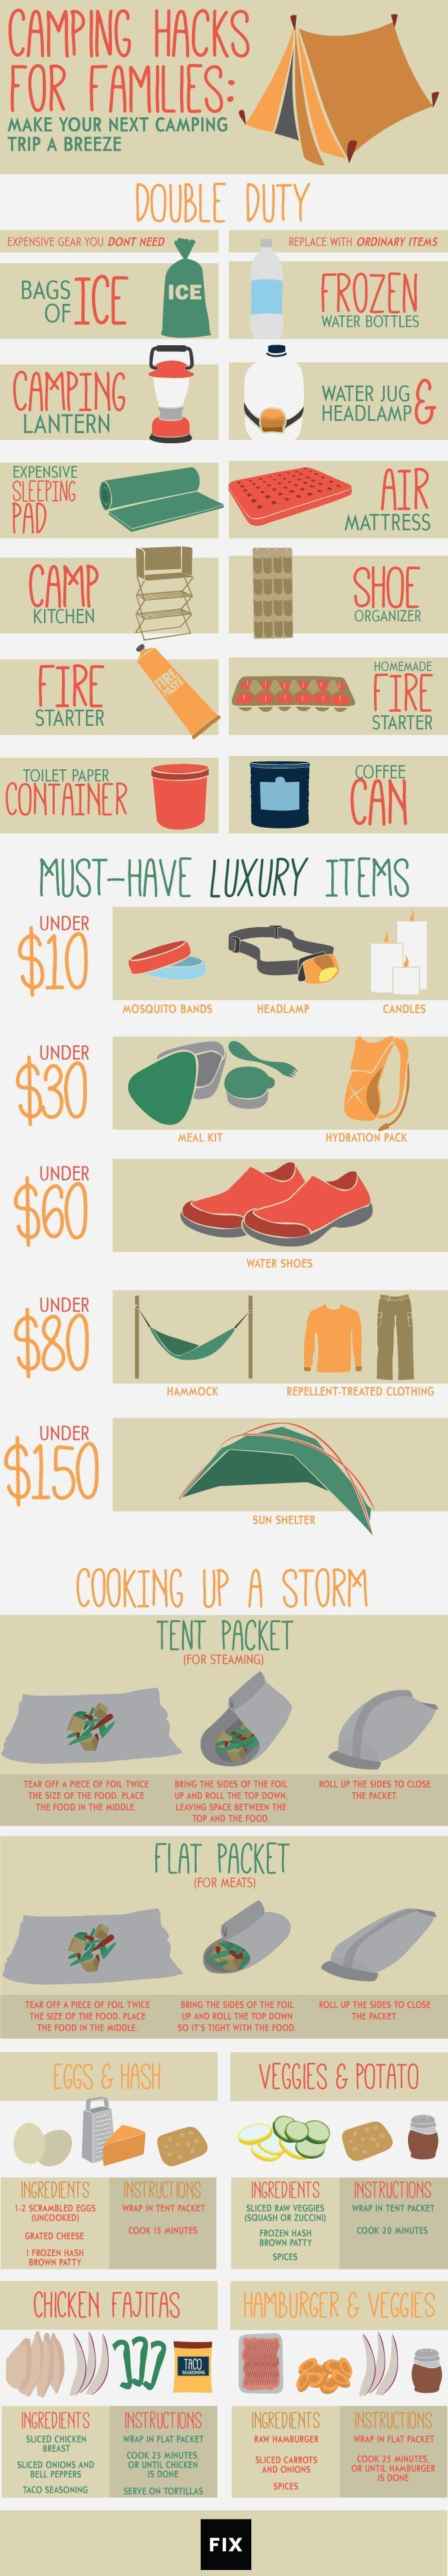 Camping Hacks Pictures, Photos, and Images for Facebook, Tumblr, Pinterest, and Twitter